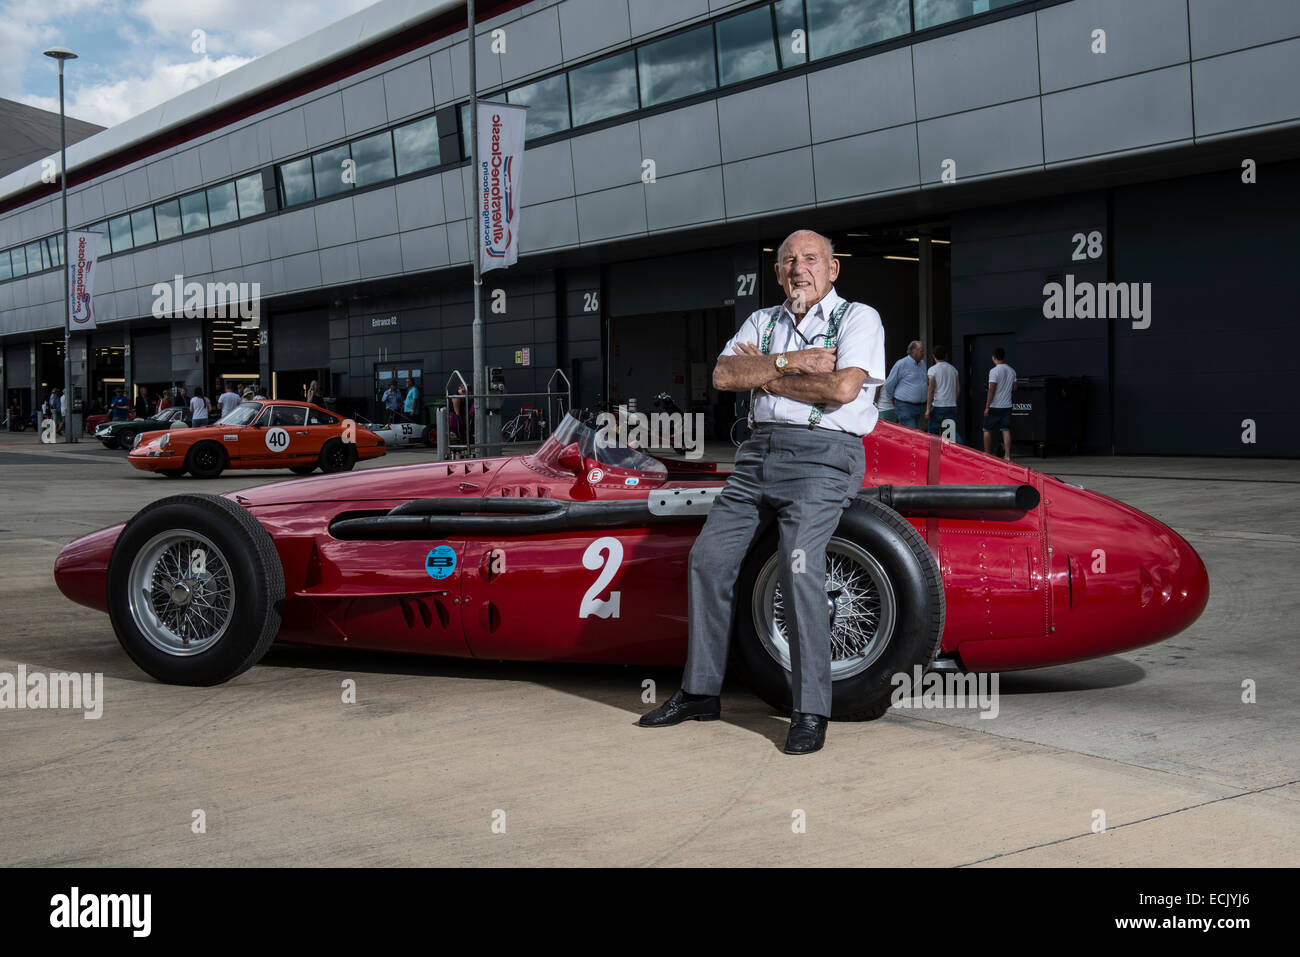 Stirling Moss poses with a Maserati 250F at Silverstone UK - Stock Image